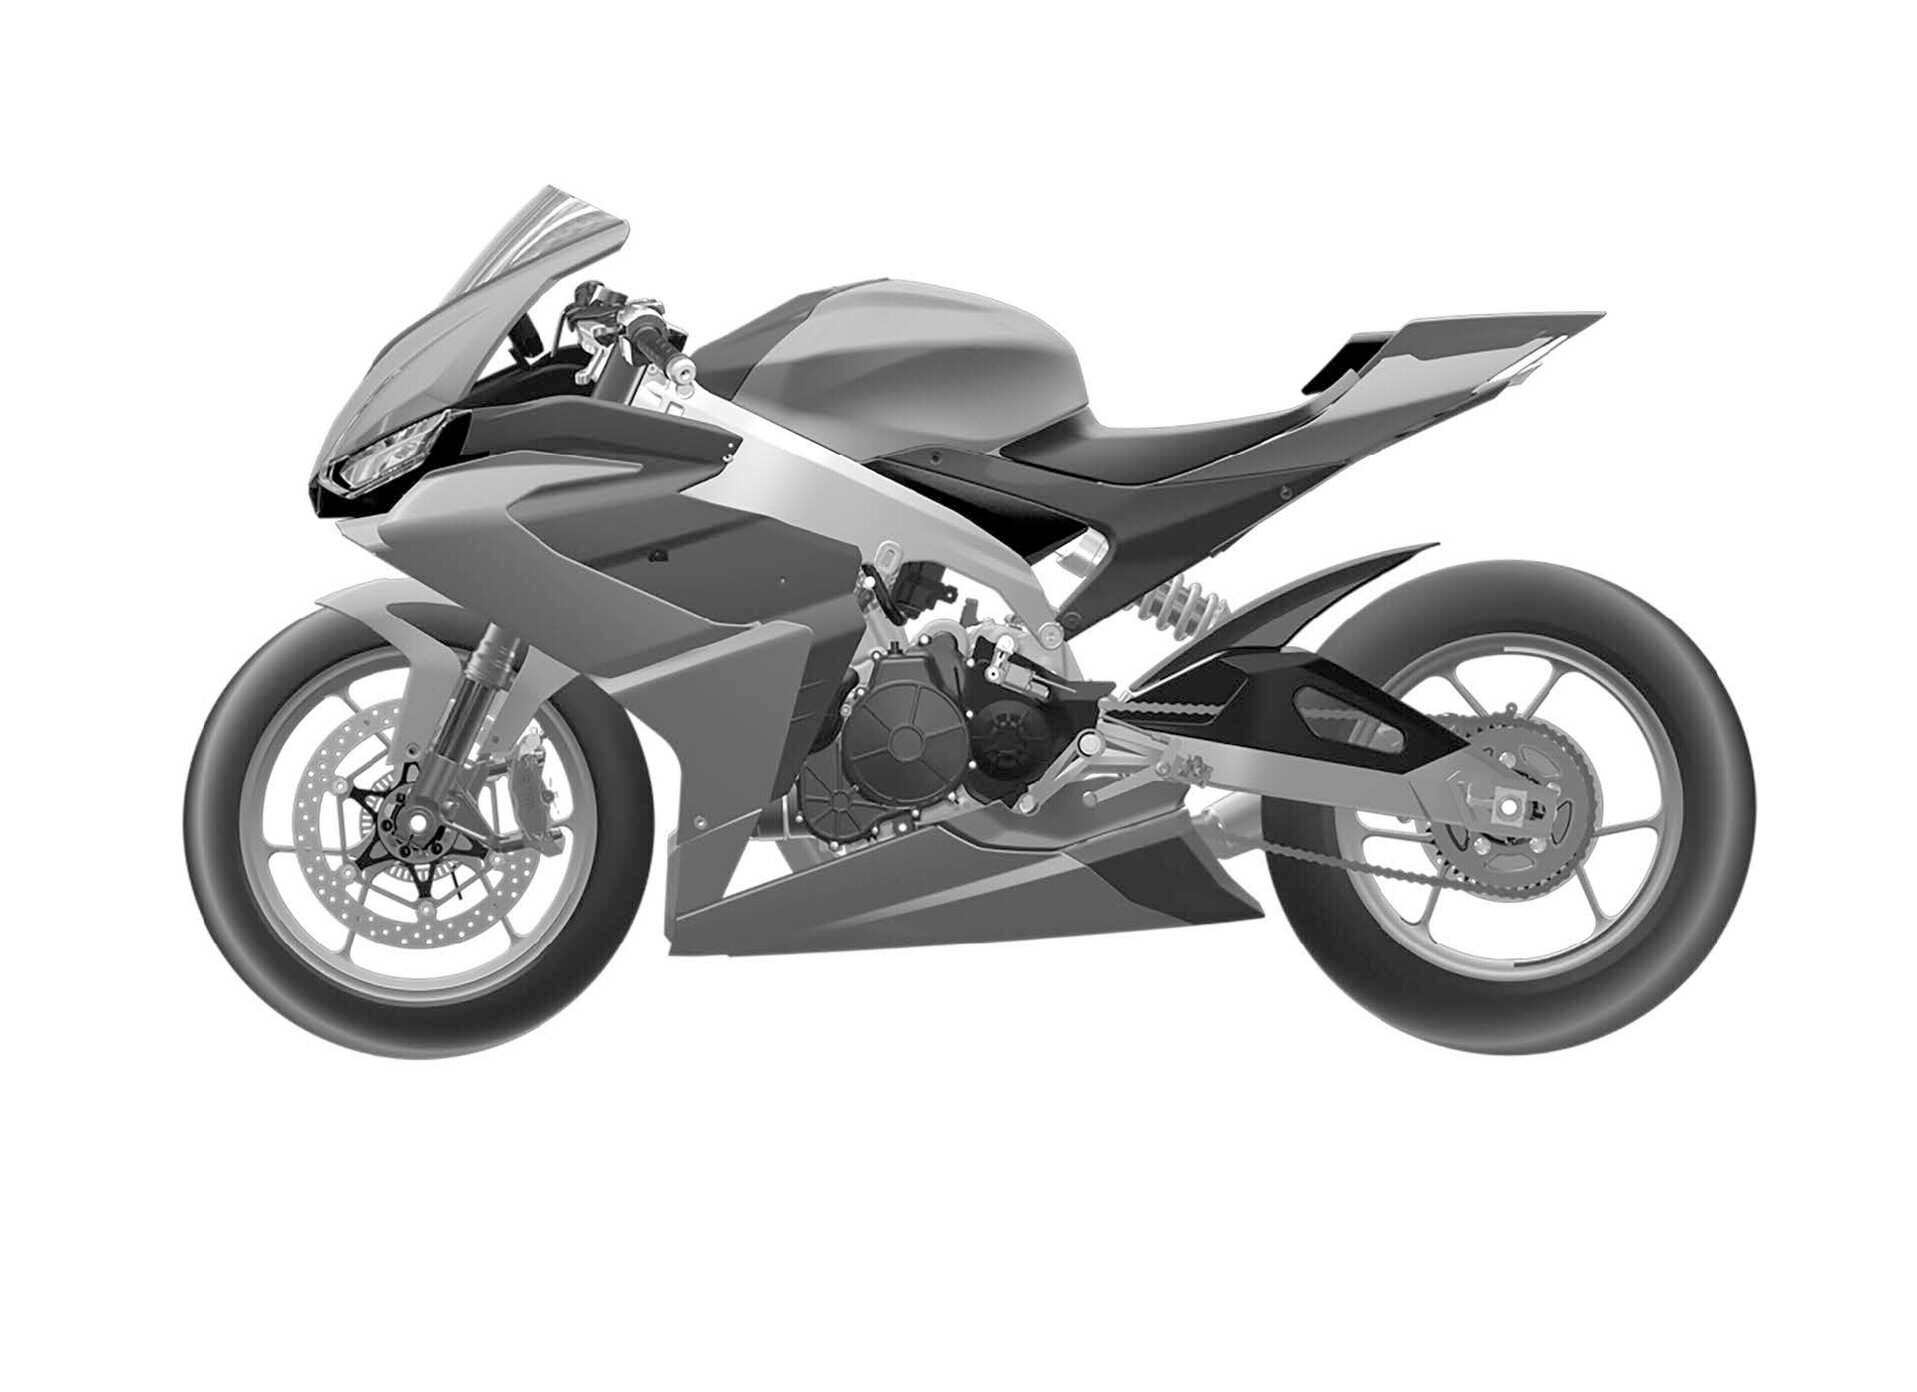 053019 2020 aprilia rs660 concept design left side txt 4